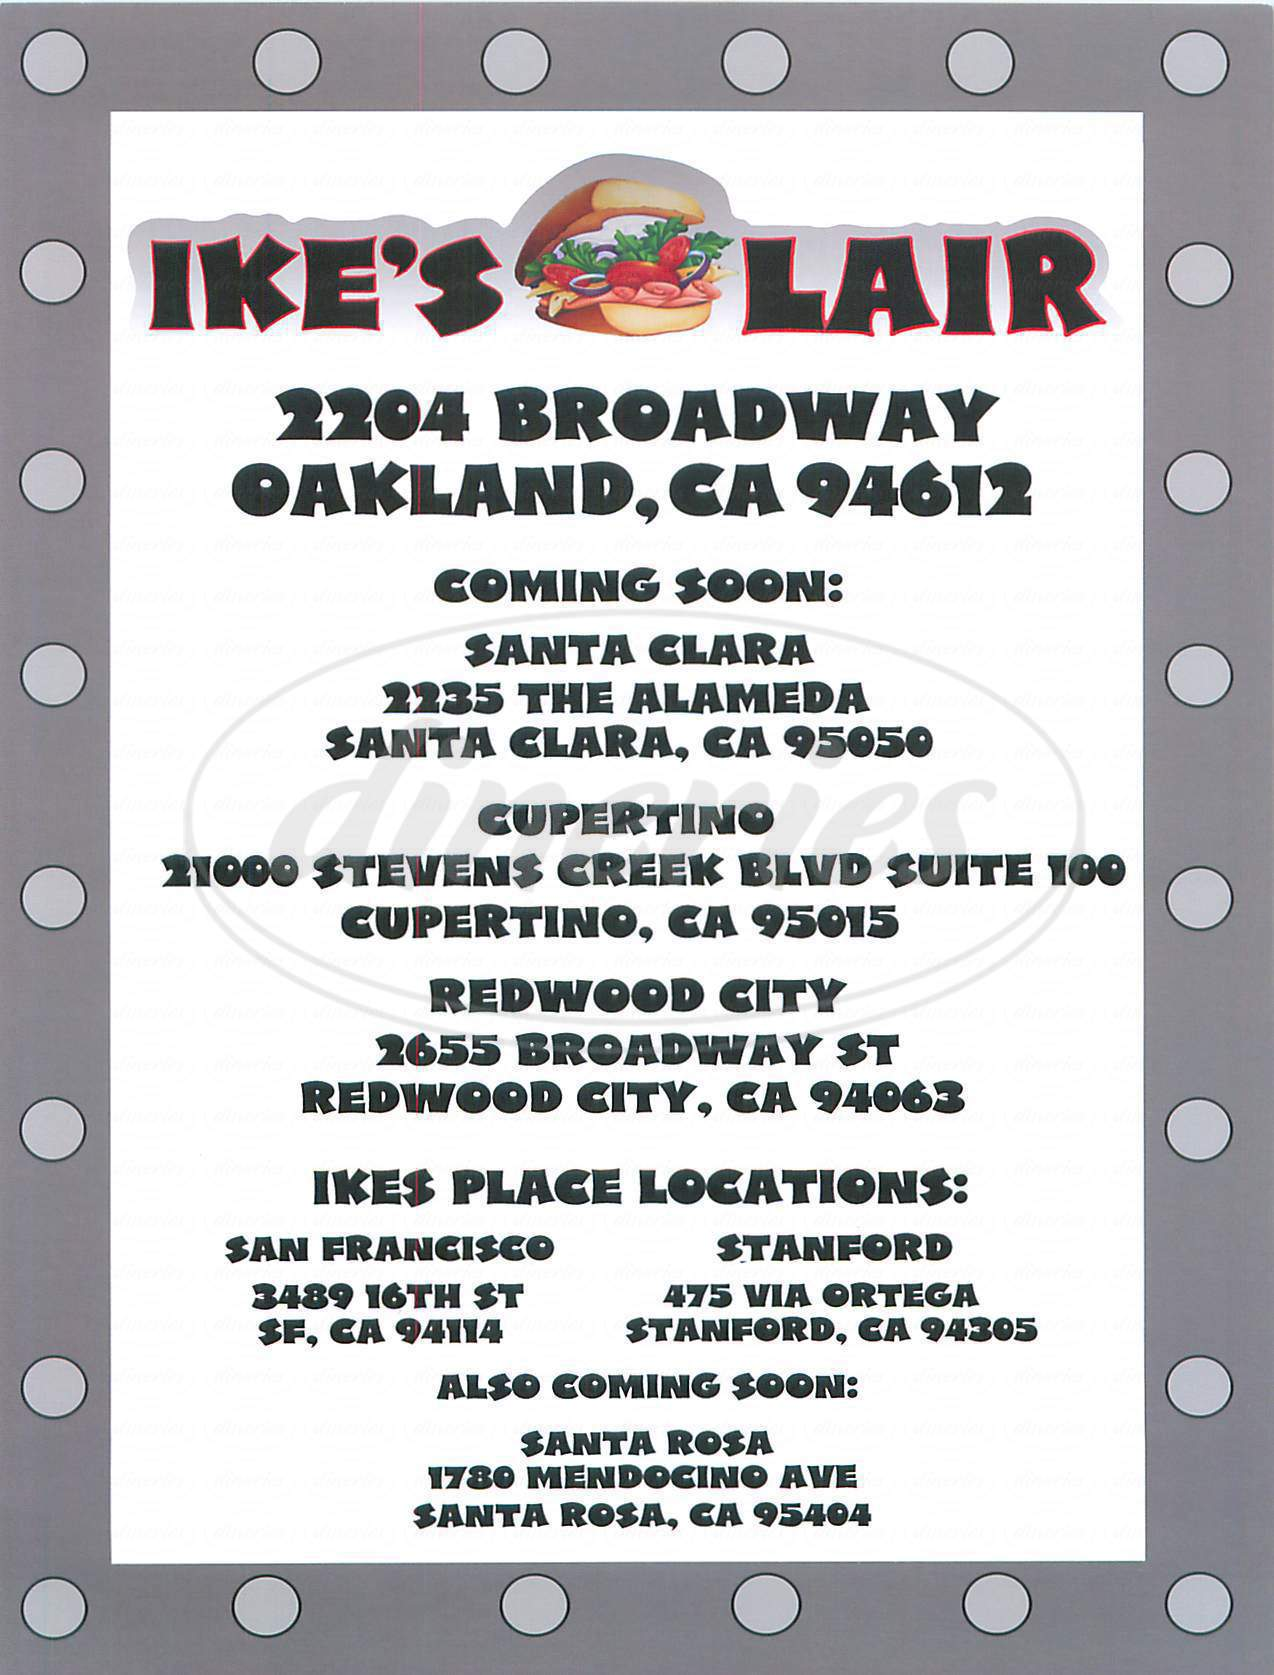 menu for Ike's Lair